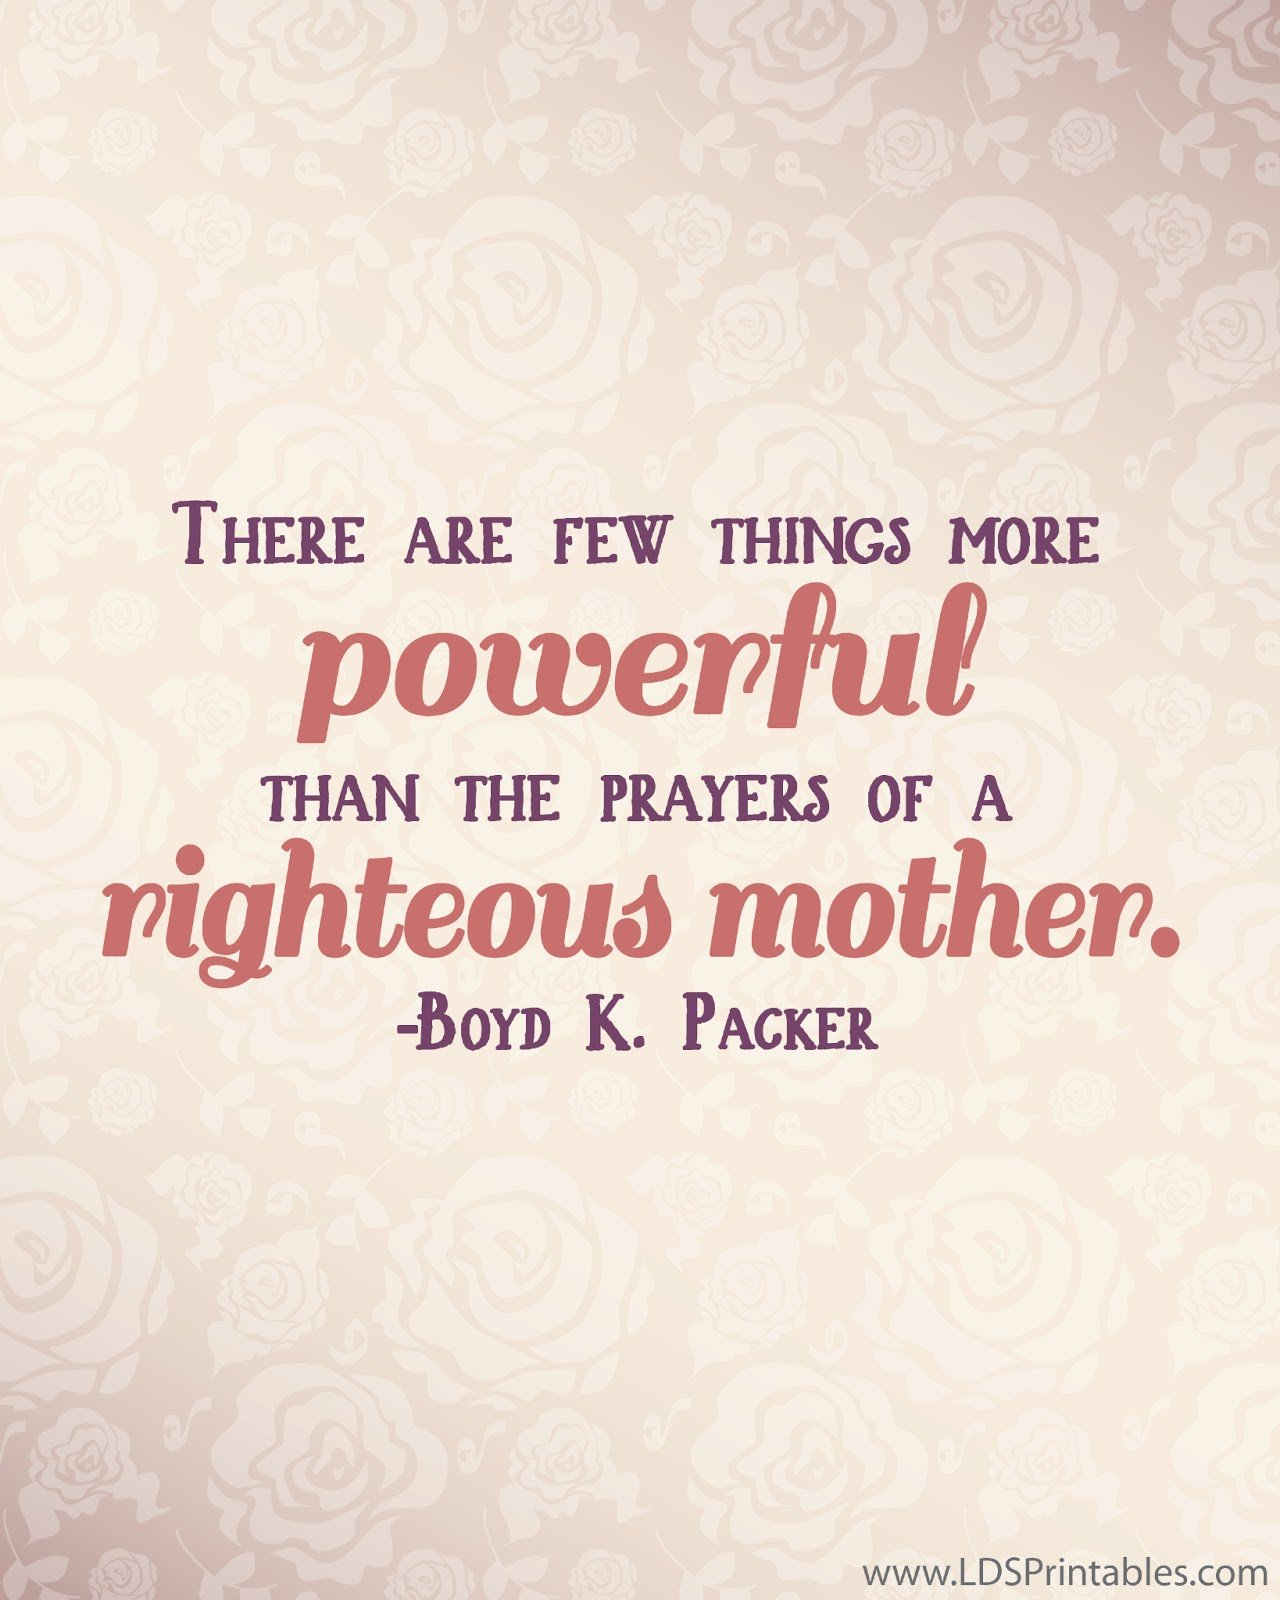 Quote On Mother: General Mothers Day Quotes. QuotesGram